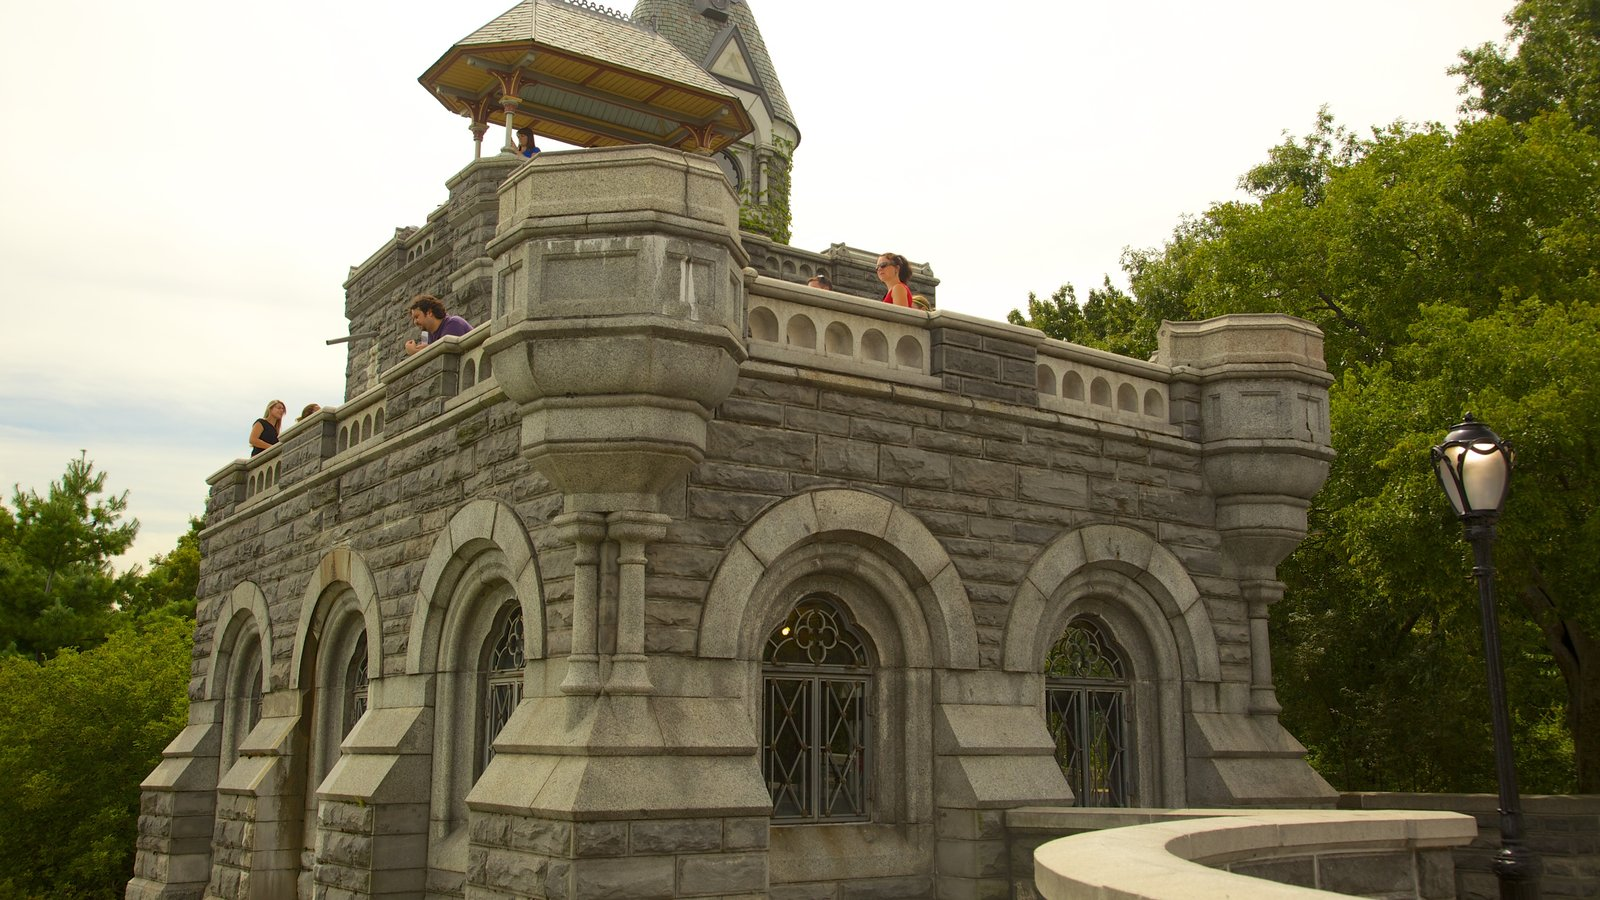 Belvedere Castle showing chateau or palace